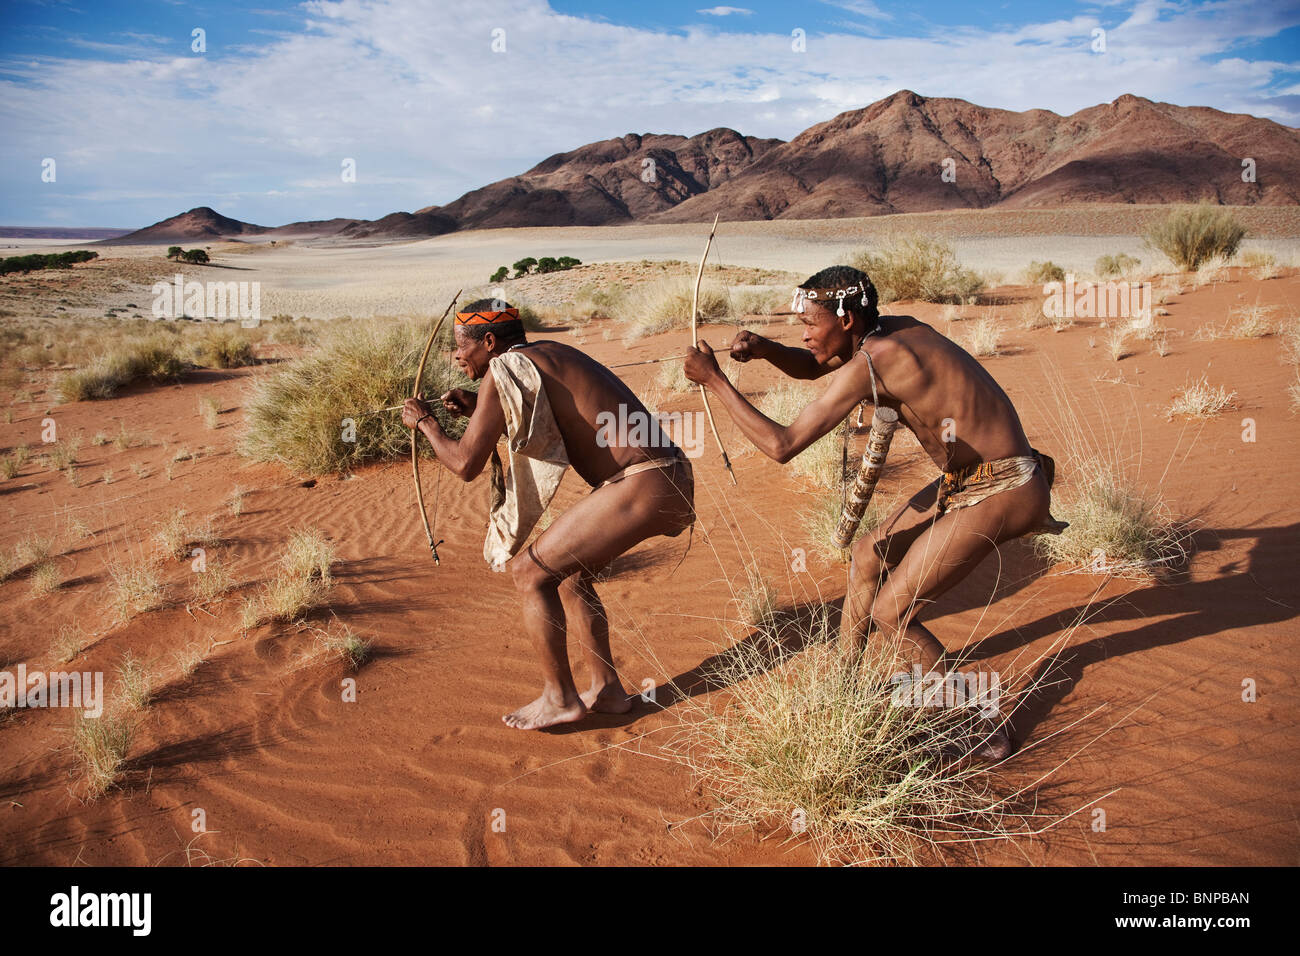 Bushman/San People. Male San hunters armed with traditional bow and arrow - Stock Image